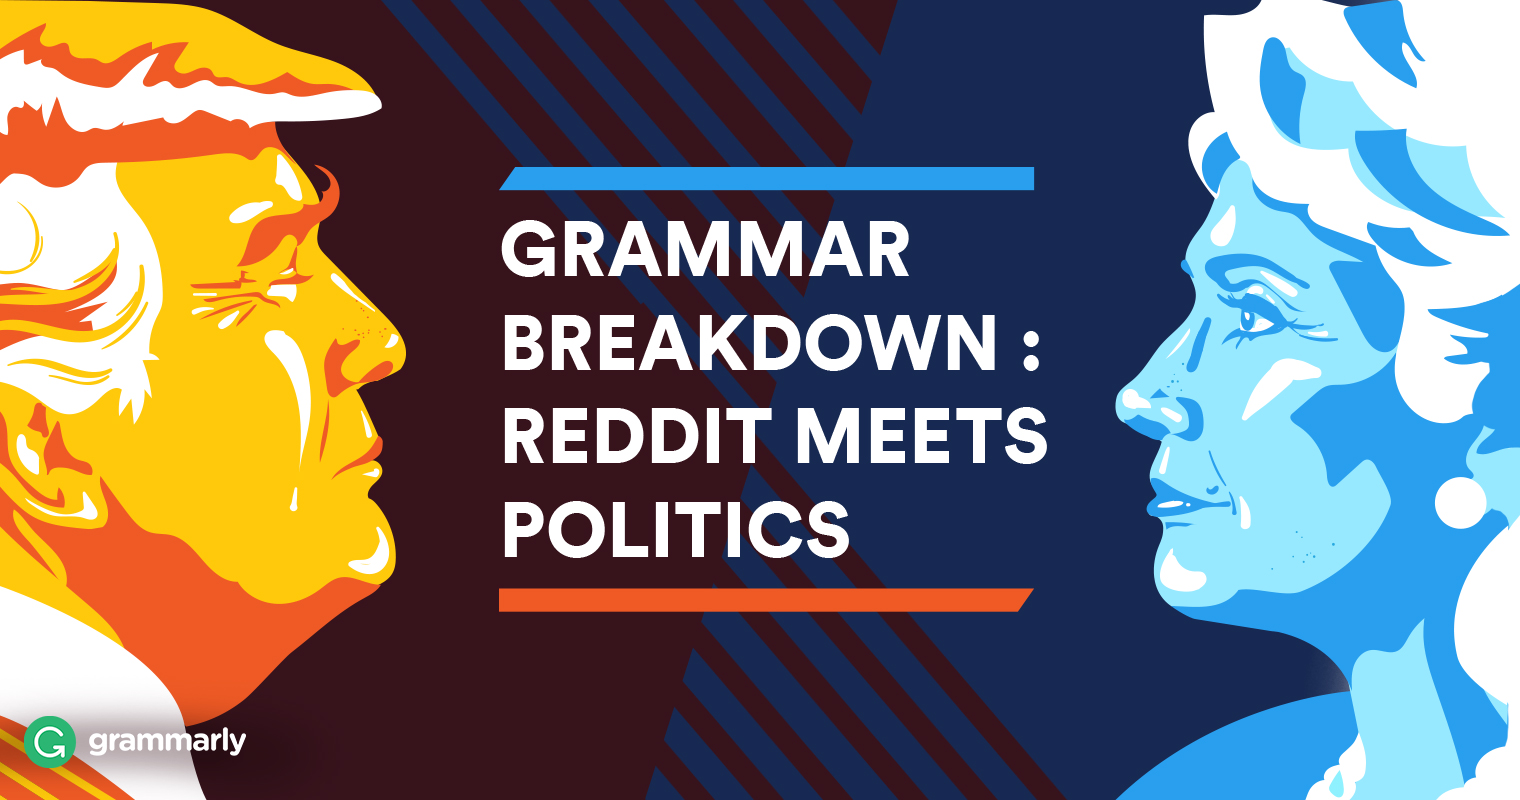 Reddit Politics Writing Breakdown: The Right and Left Are Closer Than You Think